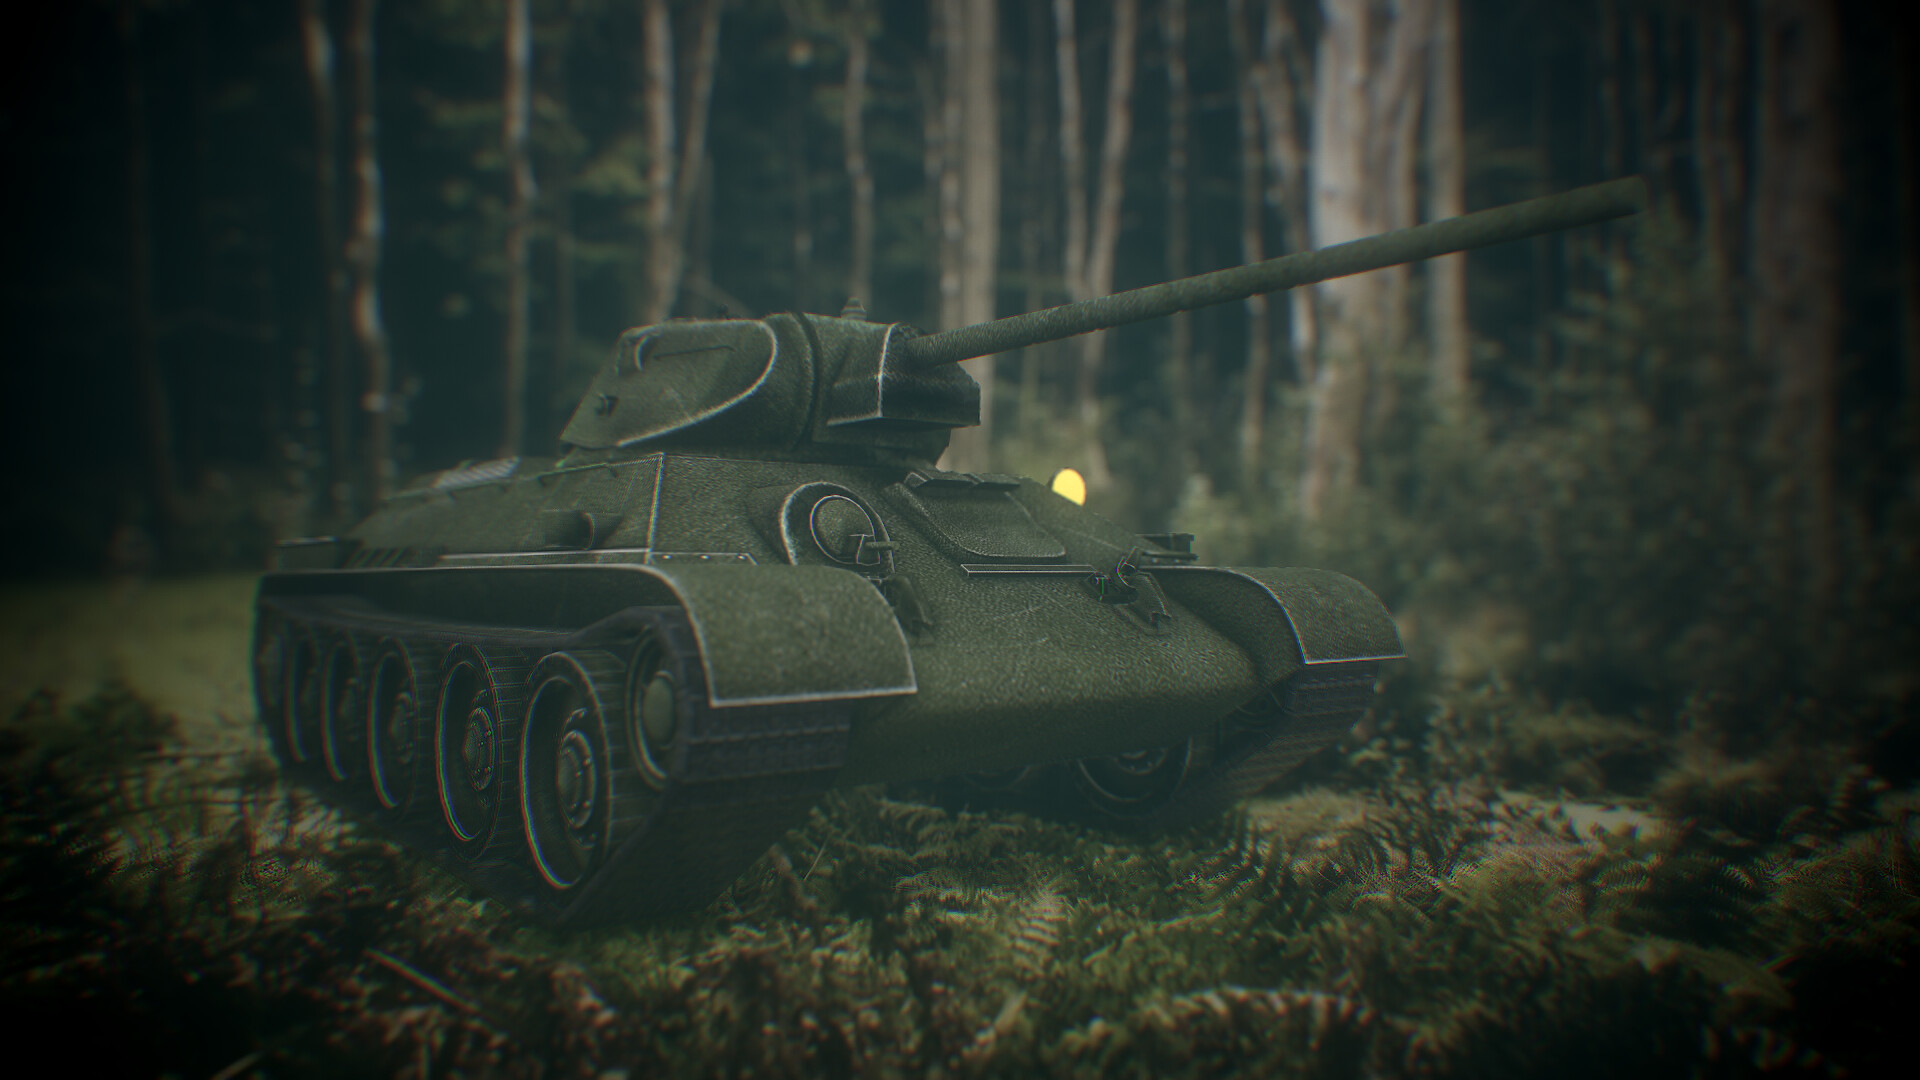 Low Poly Soviet Tank T-34 Game ready  2013 scorpion3dcom  Tomas Laureckis